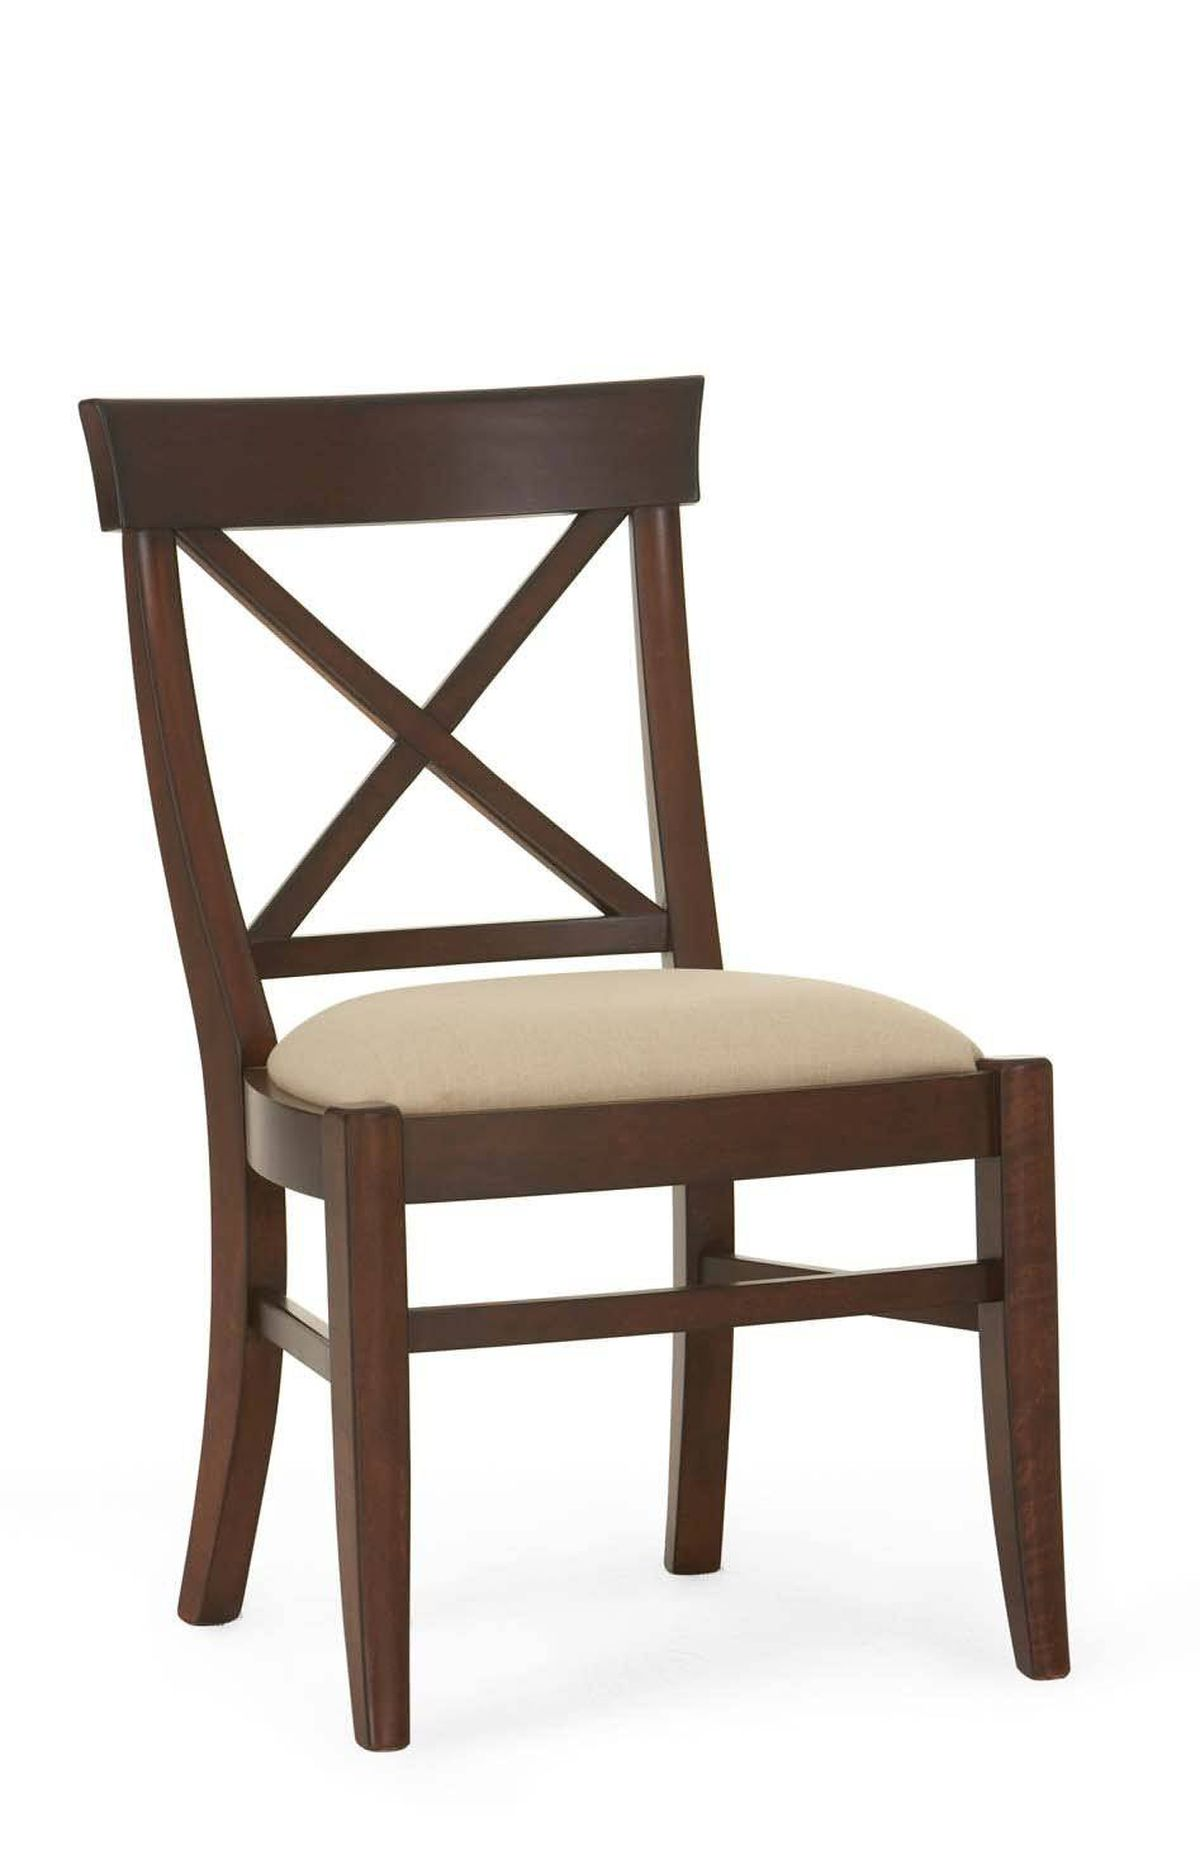 Pottery Barn's solid wood Aaron Chair features a hand-joined X-shaped back, distressed detailing and a flax linen upholstered seat. $298 at Pottery Barn (www.potterybarn.ca).